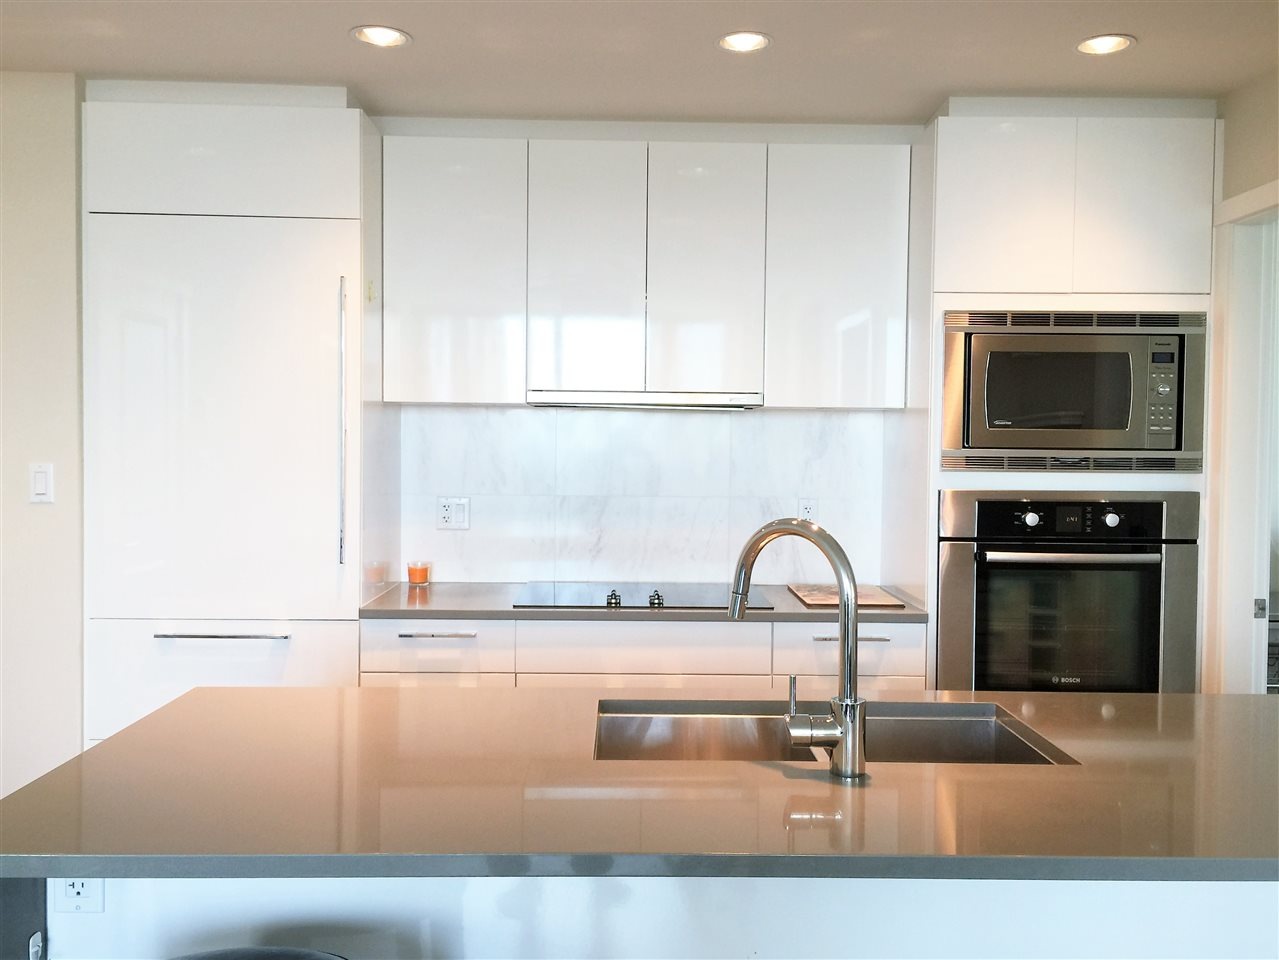 Photo 5: 1802 5728 BERTON Avenue in Vancouver: University VW Condo for sale (Vancouver West)  : MLS® # R2049668